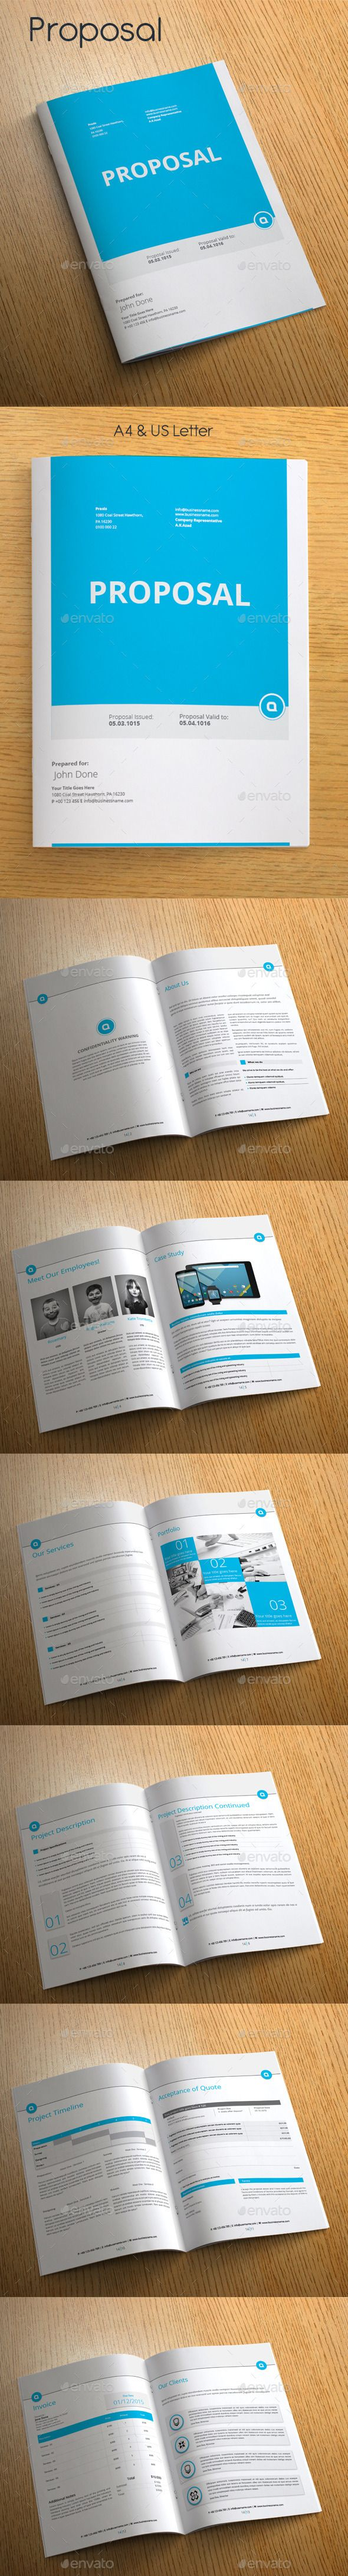 Proposal Template Download: http://graphicriver.net/item/proposal-template/10505820?ref=ksioks